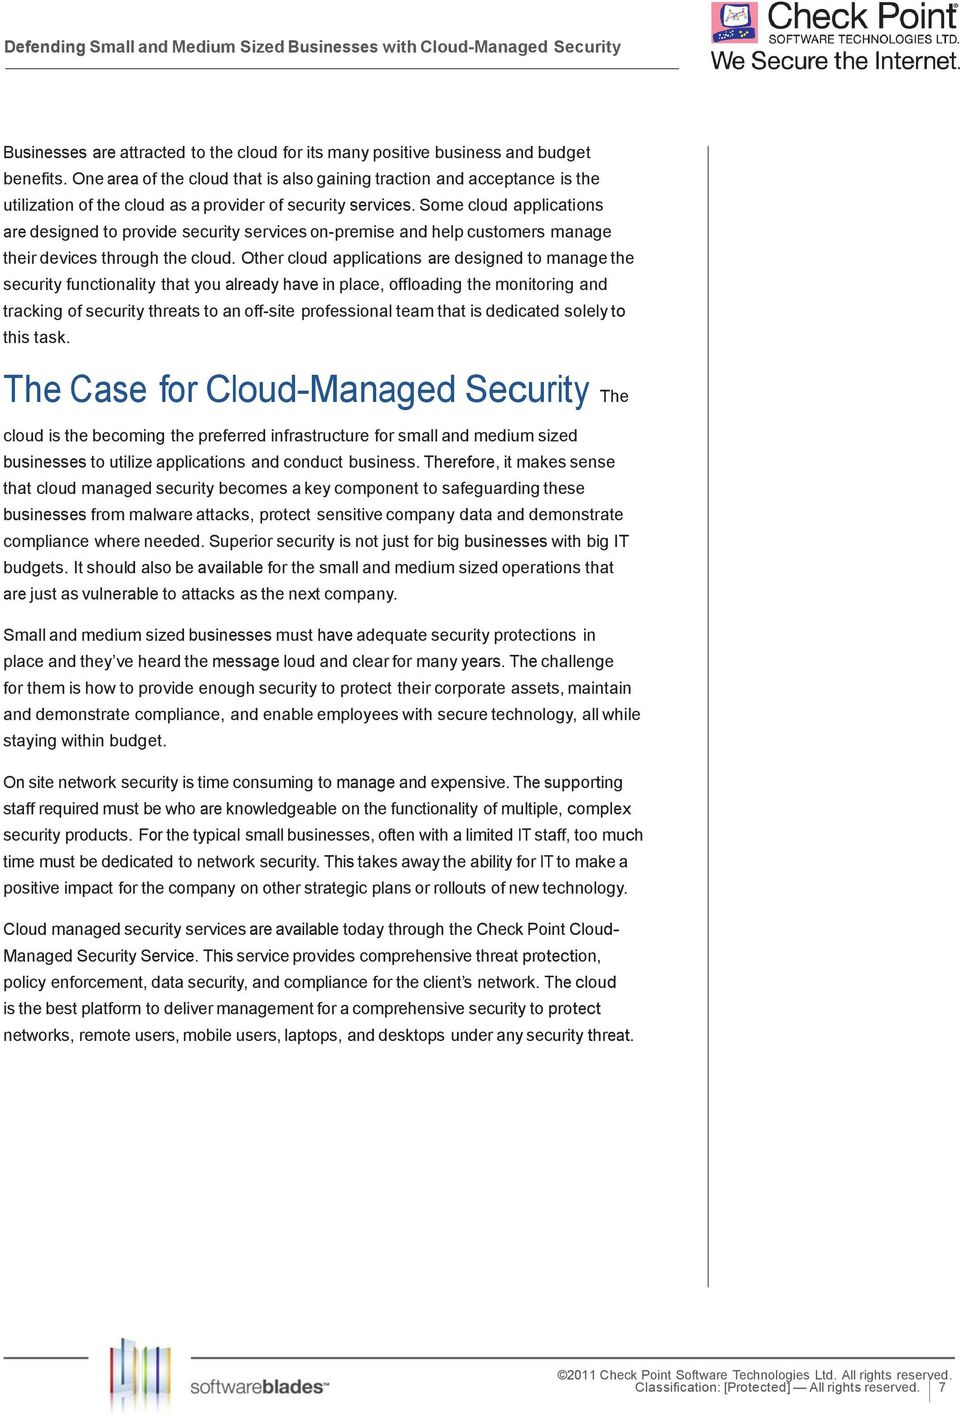 Some cloud applications are designed to provide security services on-premise and help customers manage their devices through the cloud.